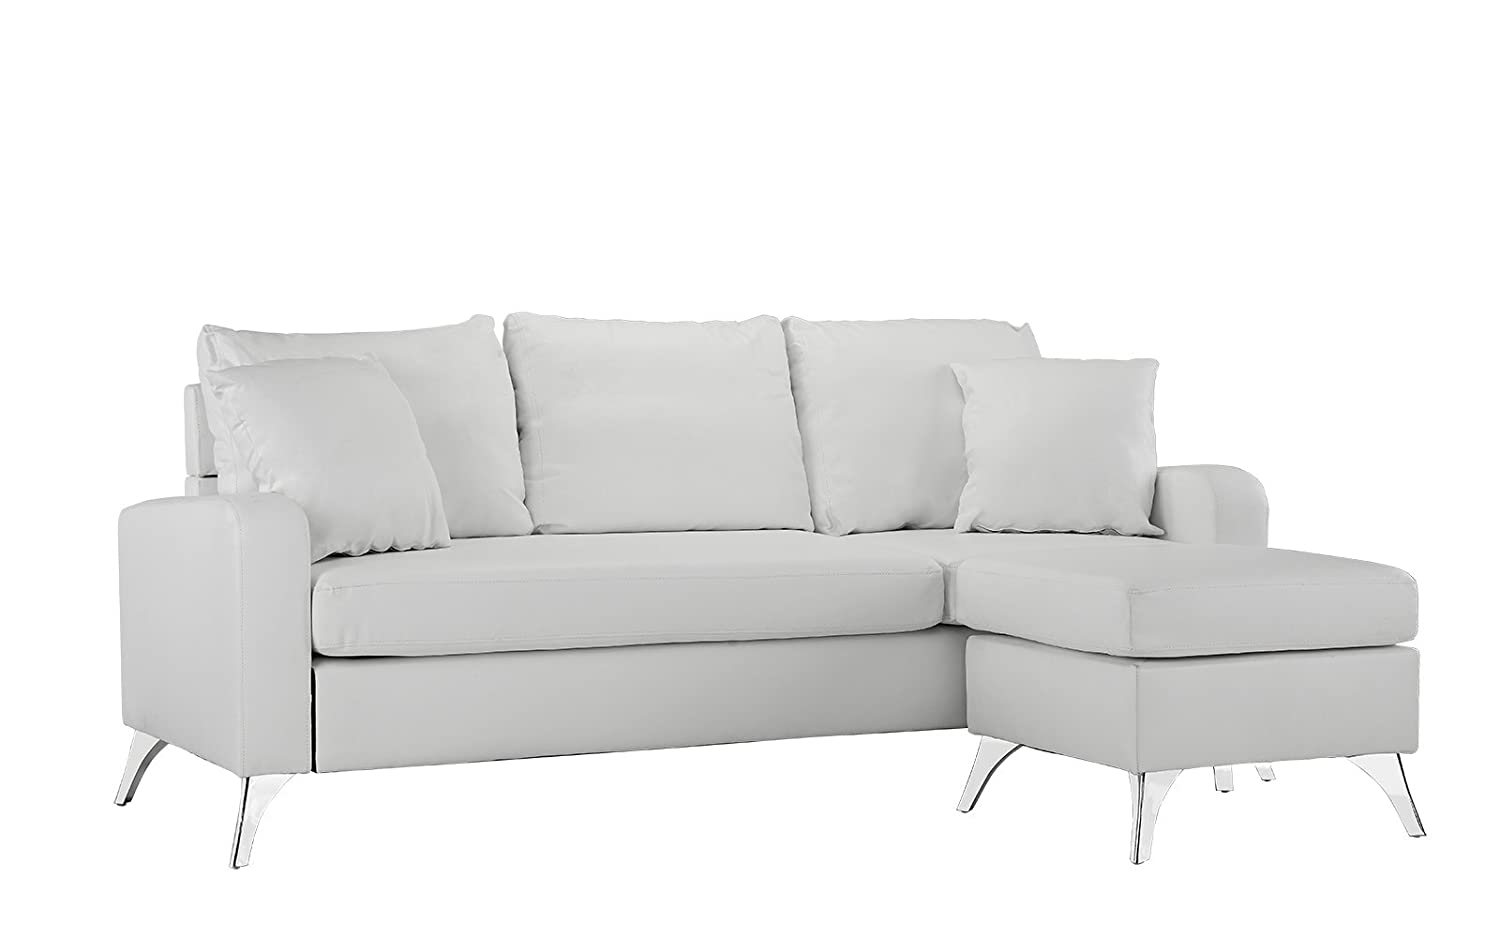 Divano Roma Furniture Bonded Leather Sectional Sofa U2013 Small Space  Configurable Couch (White)